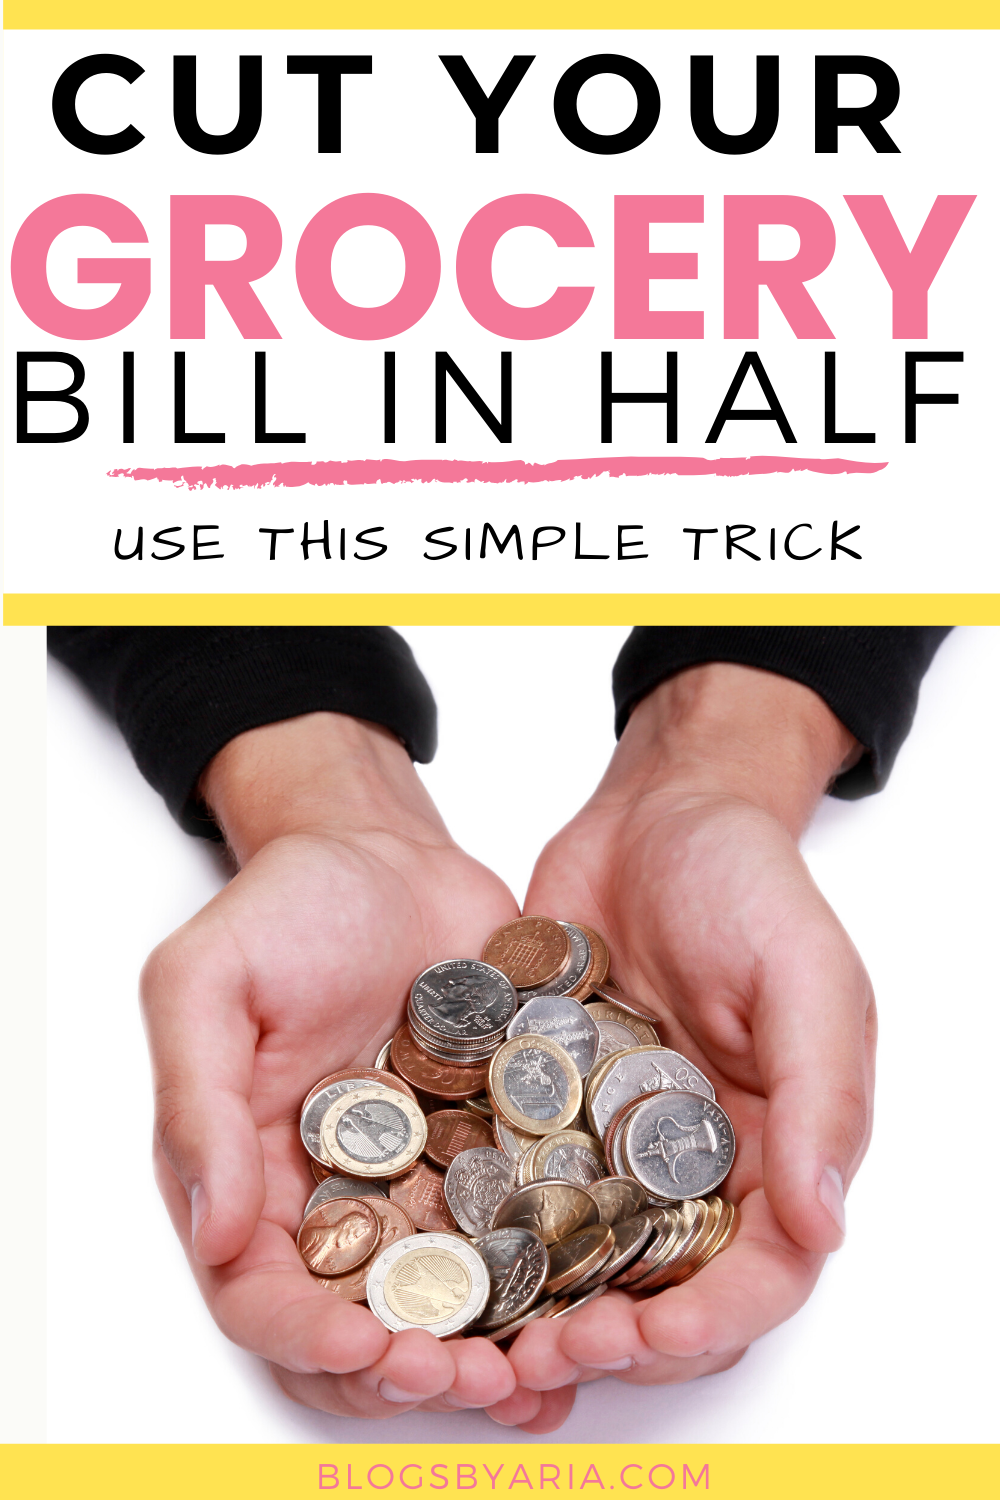 cut your grocery bill in half with this simple trick